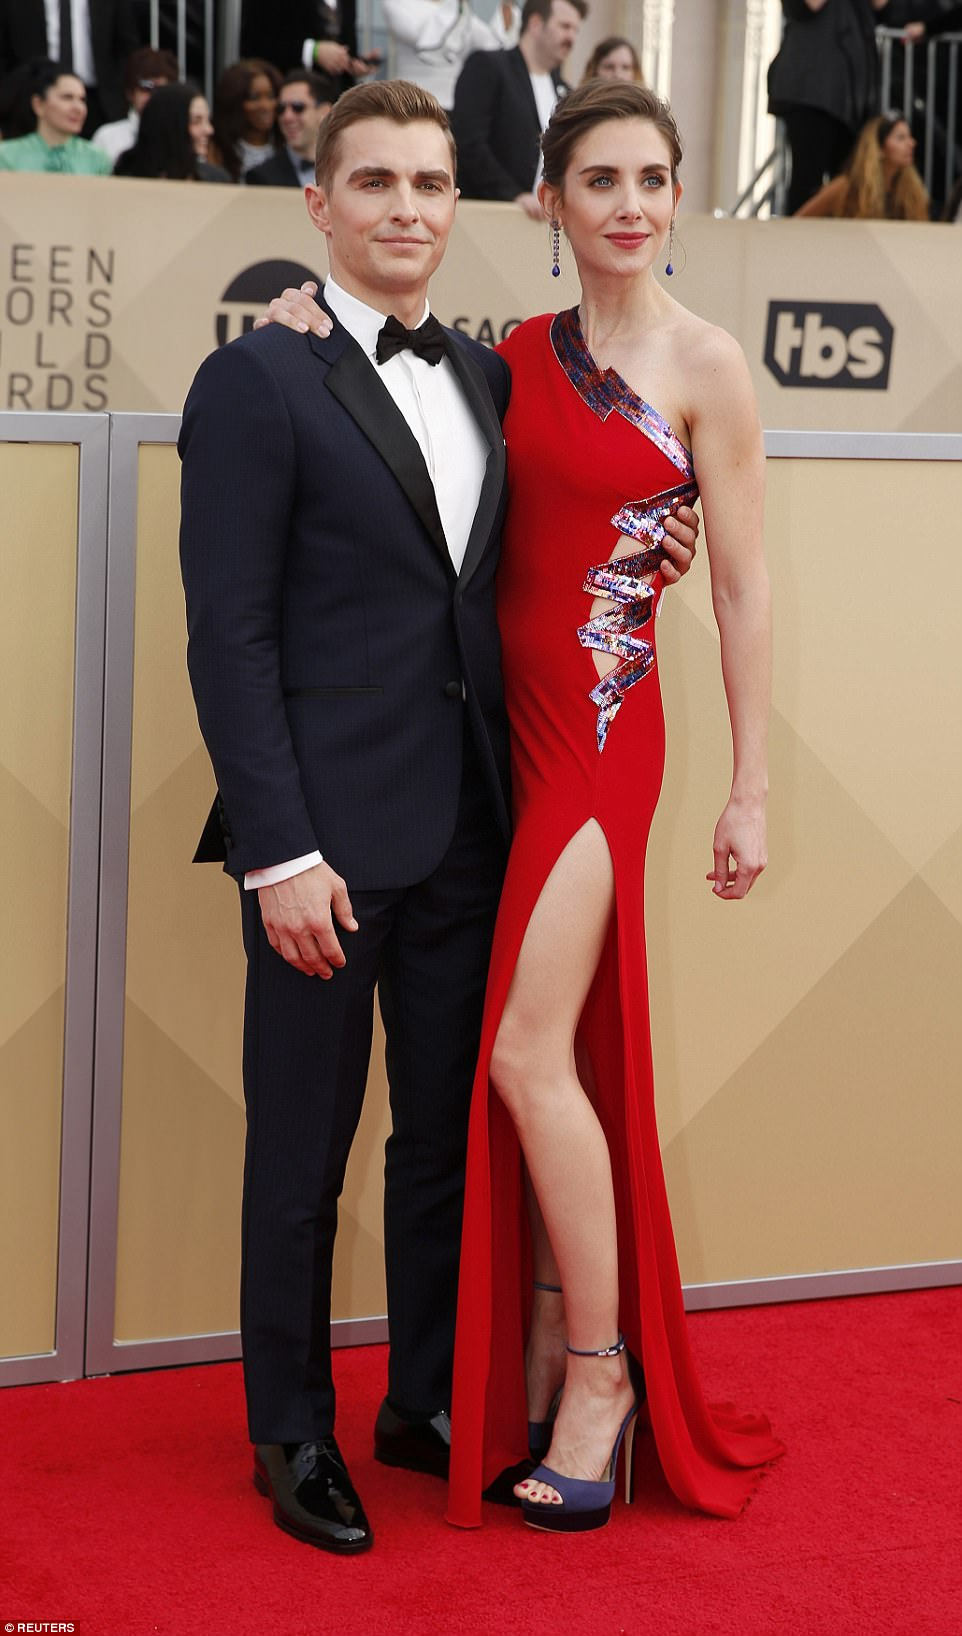 486B6C4E00000578-0-Glowed_up_Alison_Brie_pictured_with_husband_Dave_Franco_took_the-a-65_1516581730379